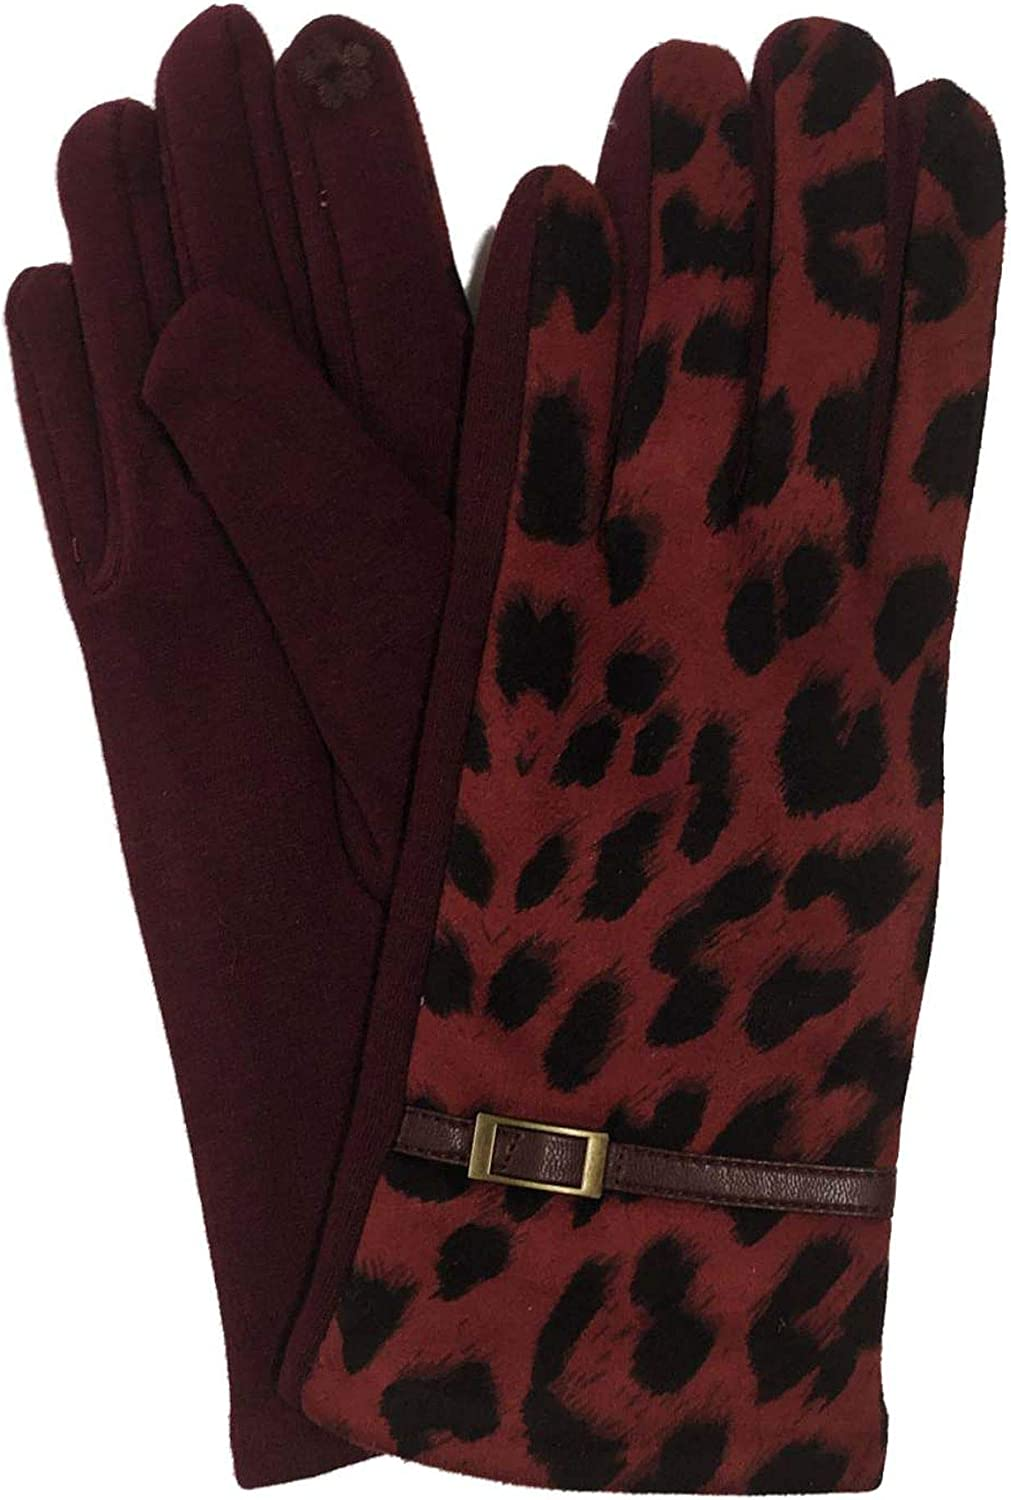 Womens Wine Red Leopard Print Stretch Fit Texting & Tech Touchscreen Gloves